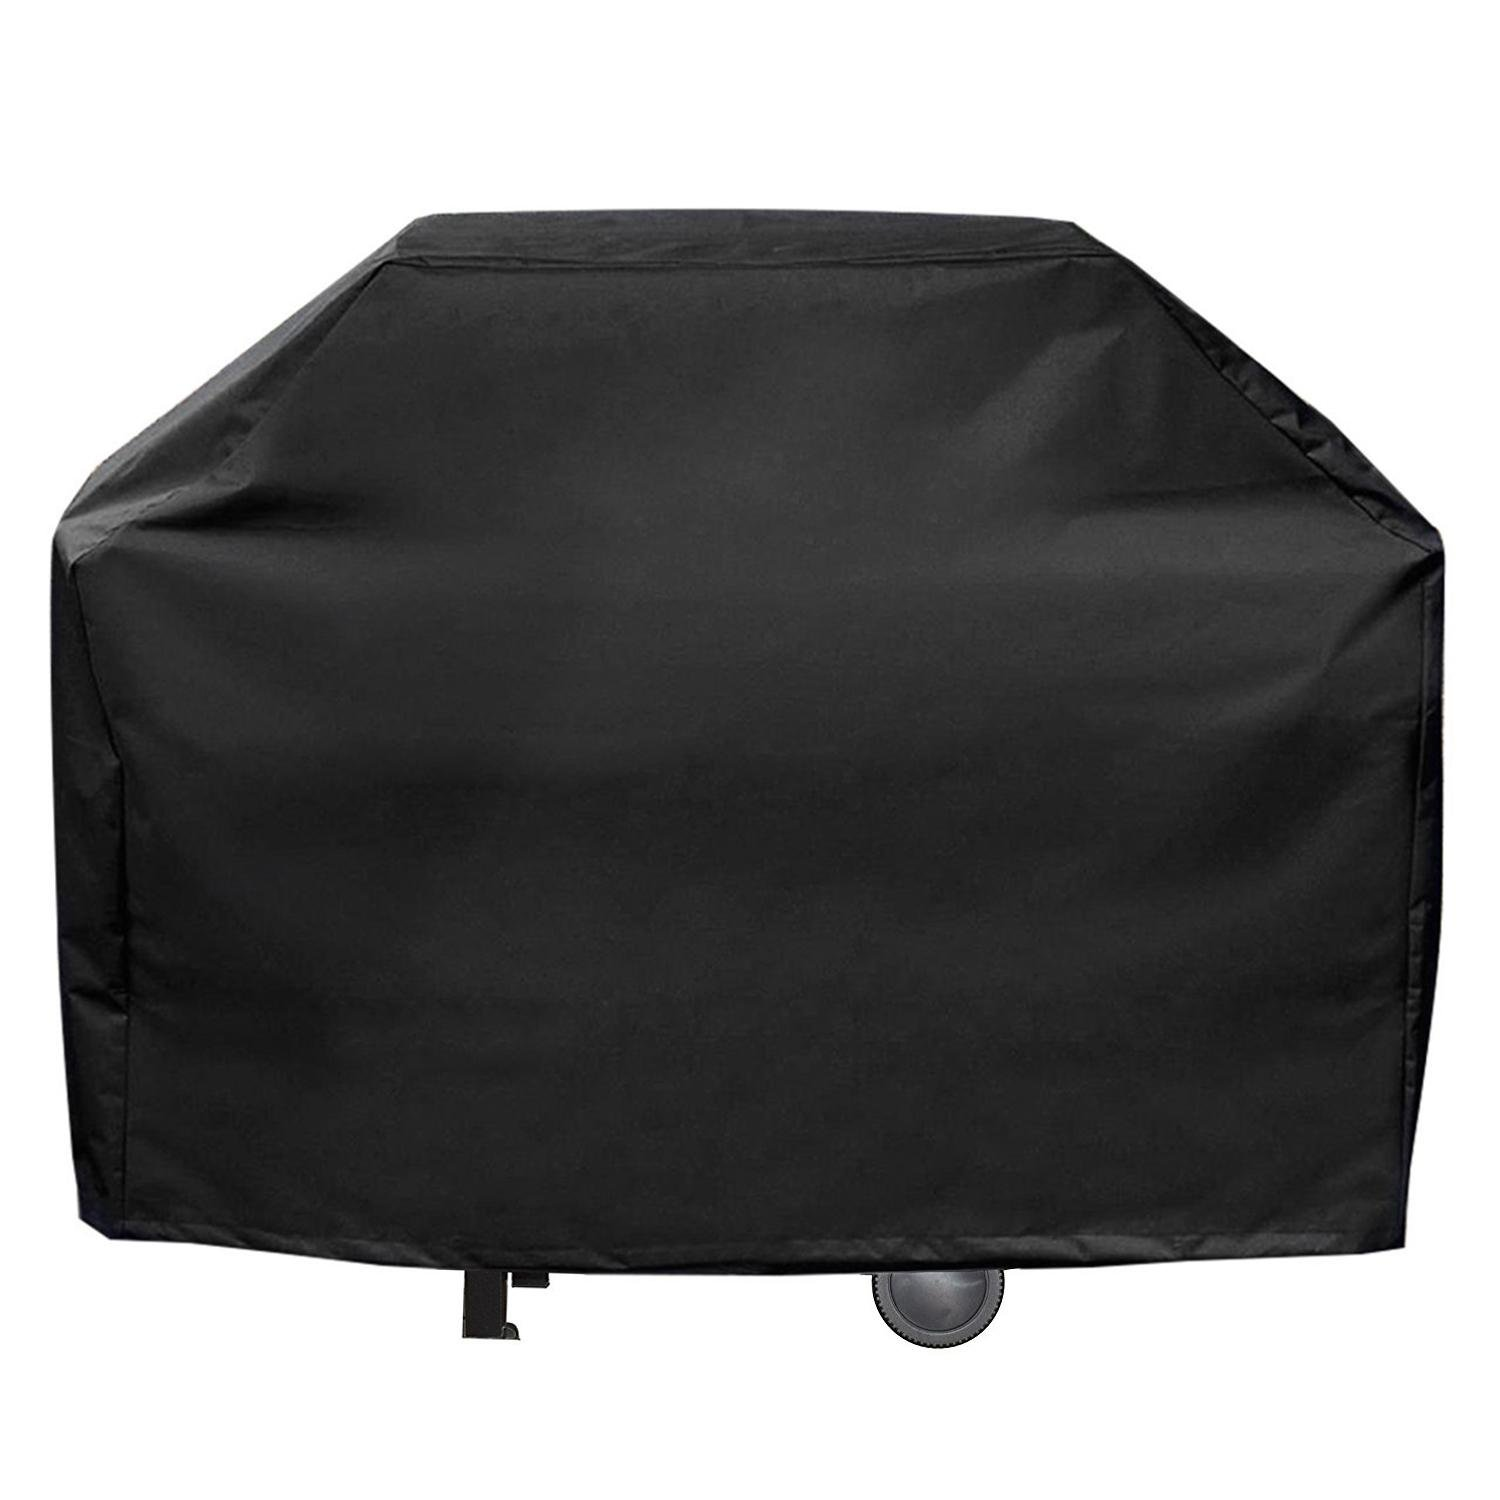 Aolvo Gas BBQ Grill Covers Heavy Duty Waterproof 60 Inch Extra Large Grill Cover for Weber, Char Broil, Brinkmann ,Holland and Jenn Air - Black